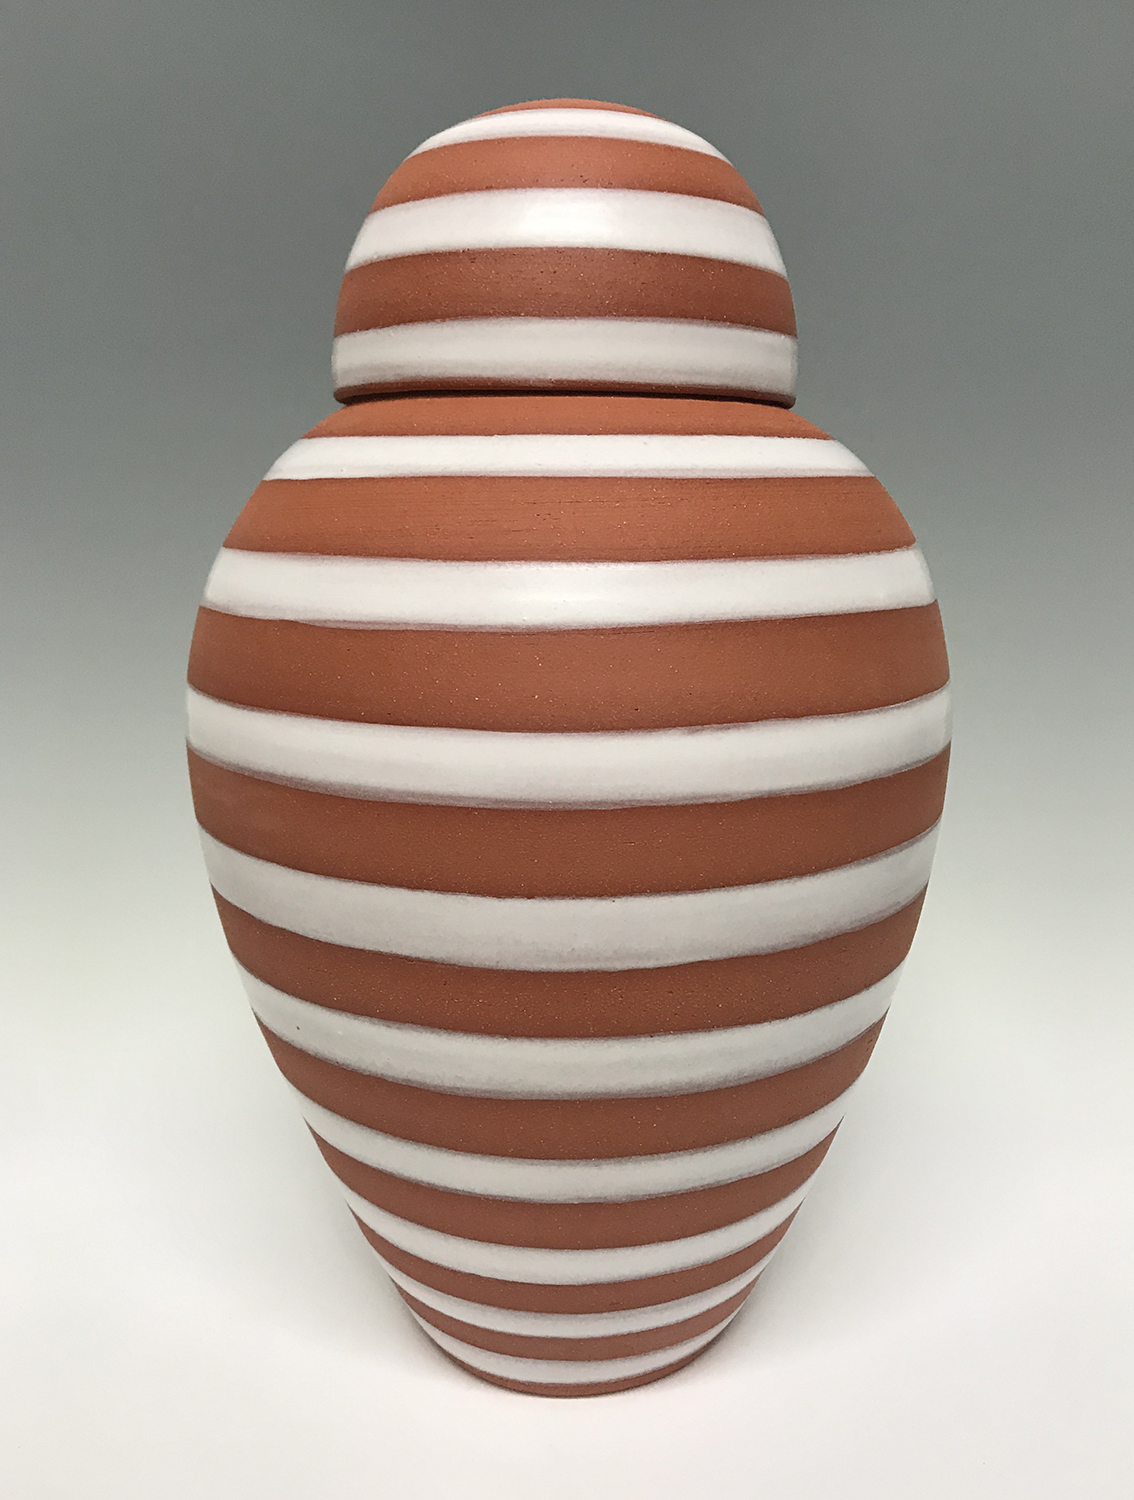 Copy of Urn with Stonehenge Glaze, 2019, terra cotta, 8.5 x 8.5 x 14 inches